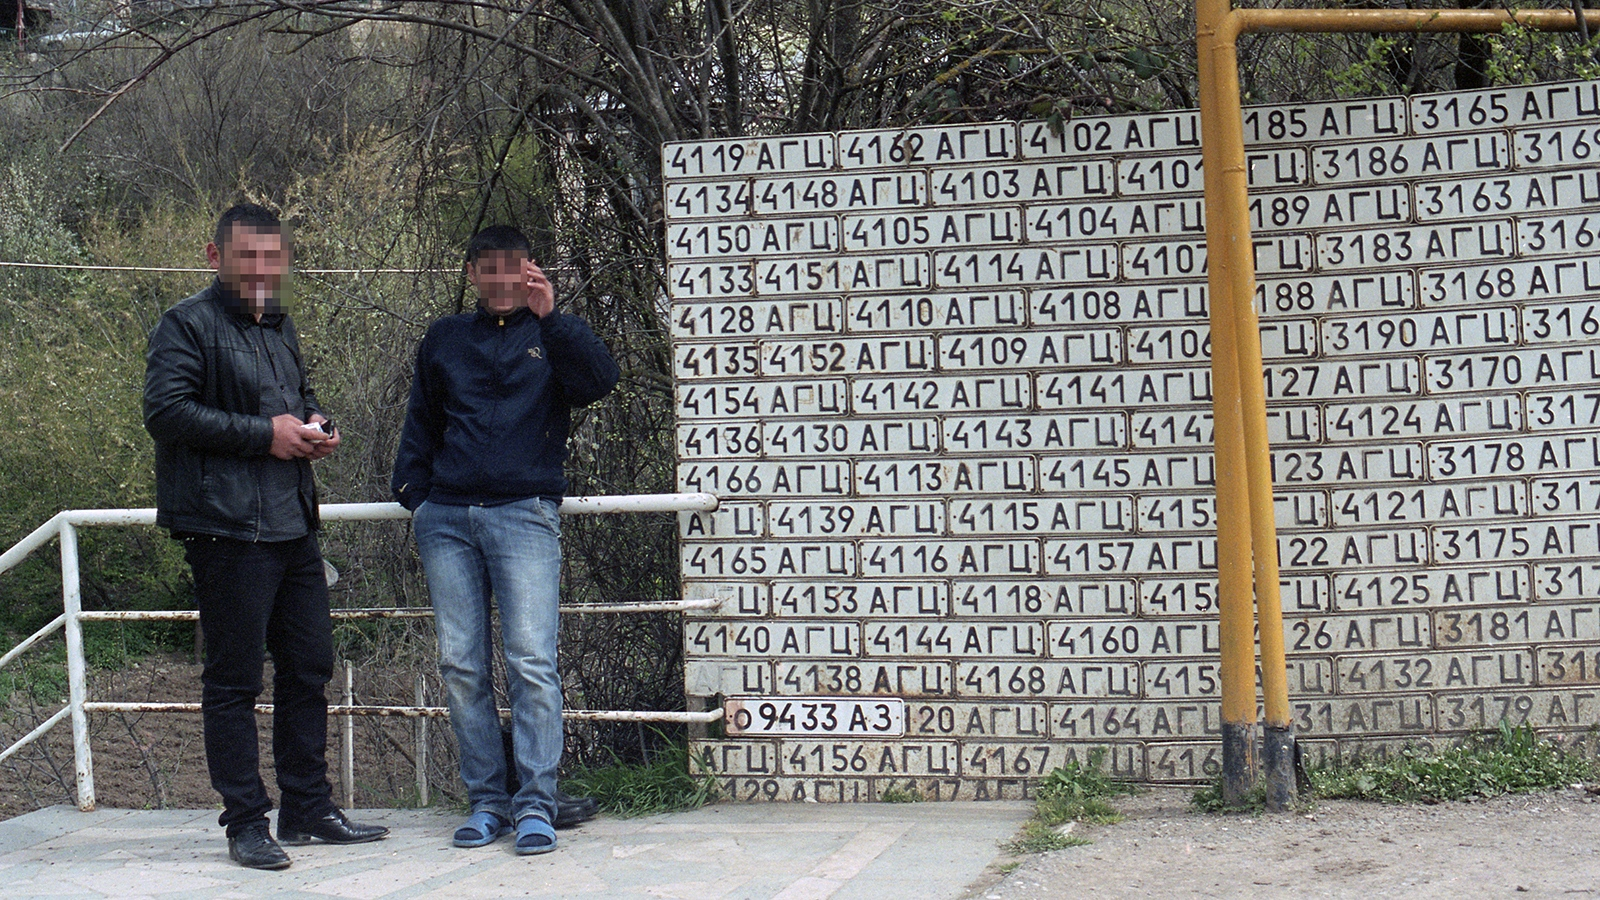 License plates of captured Azeribaijan vehicles lining the street of Vank, Karabakh